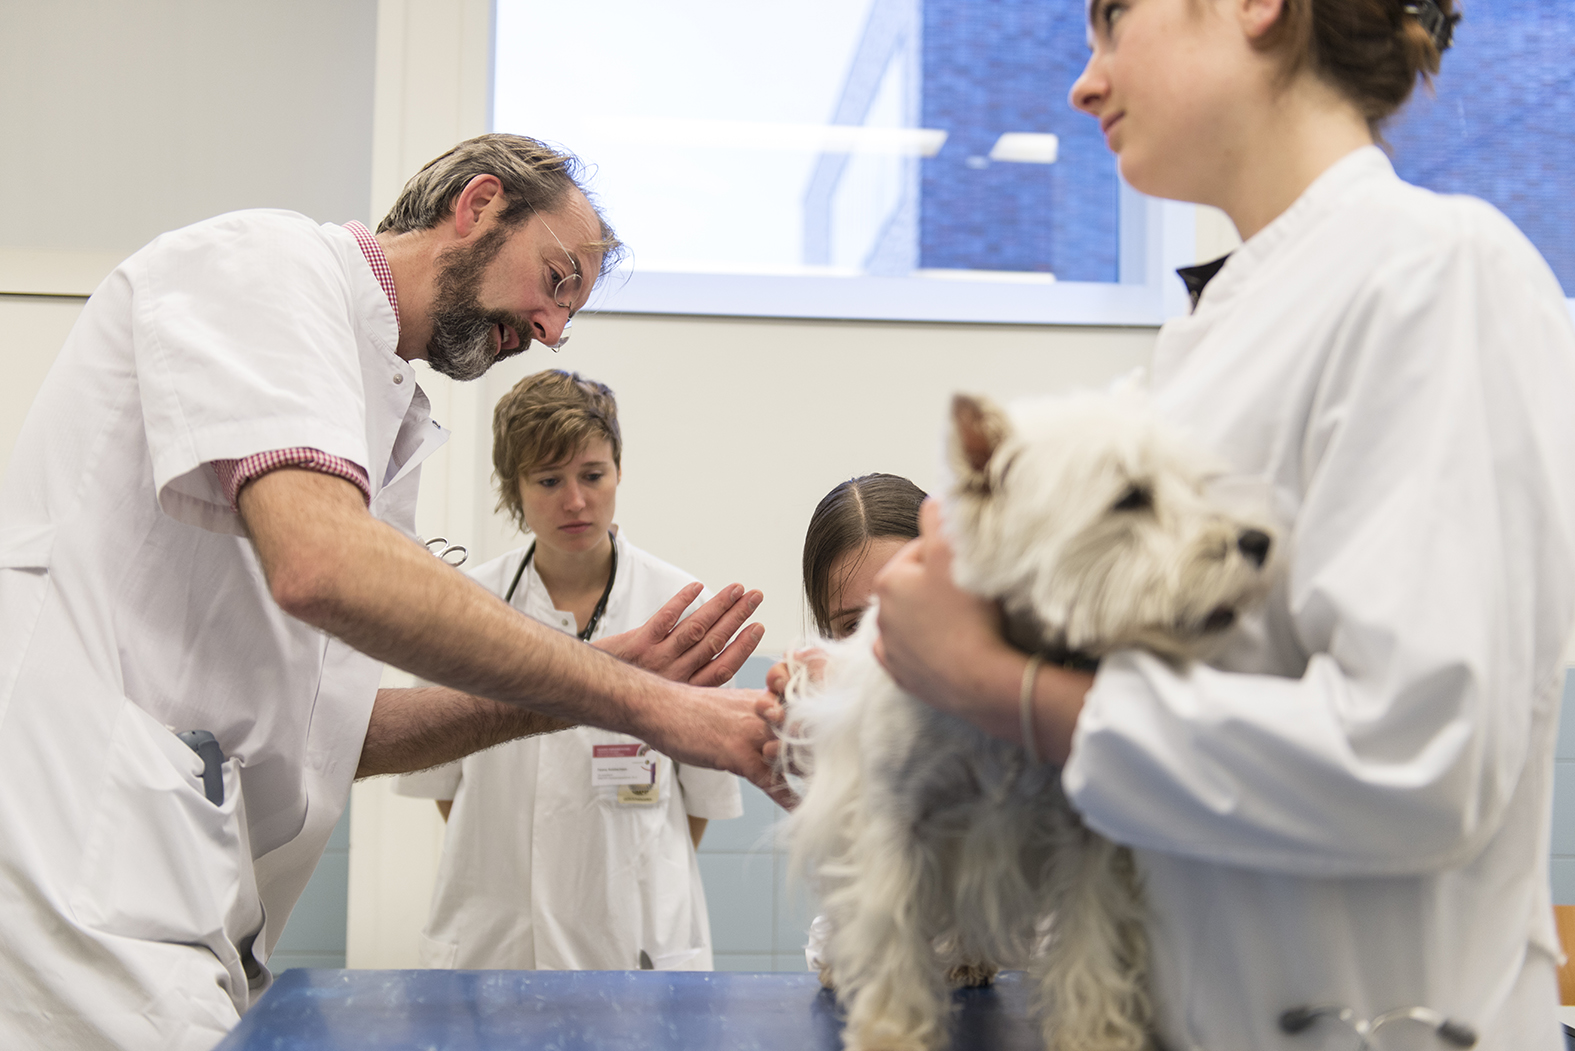 Health Professions Education veterinarians